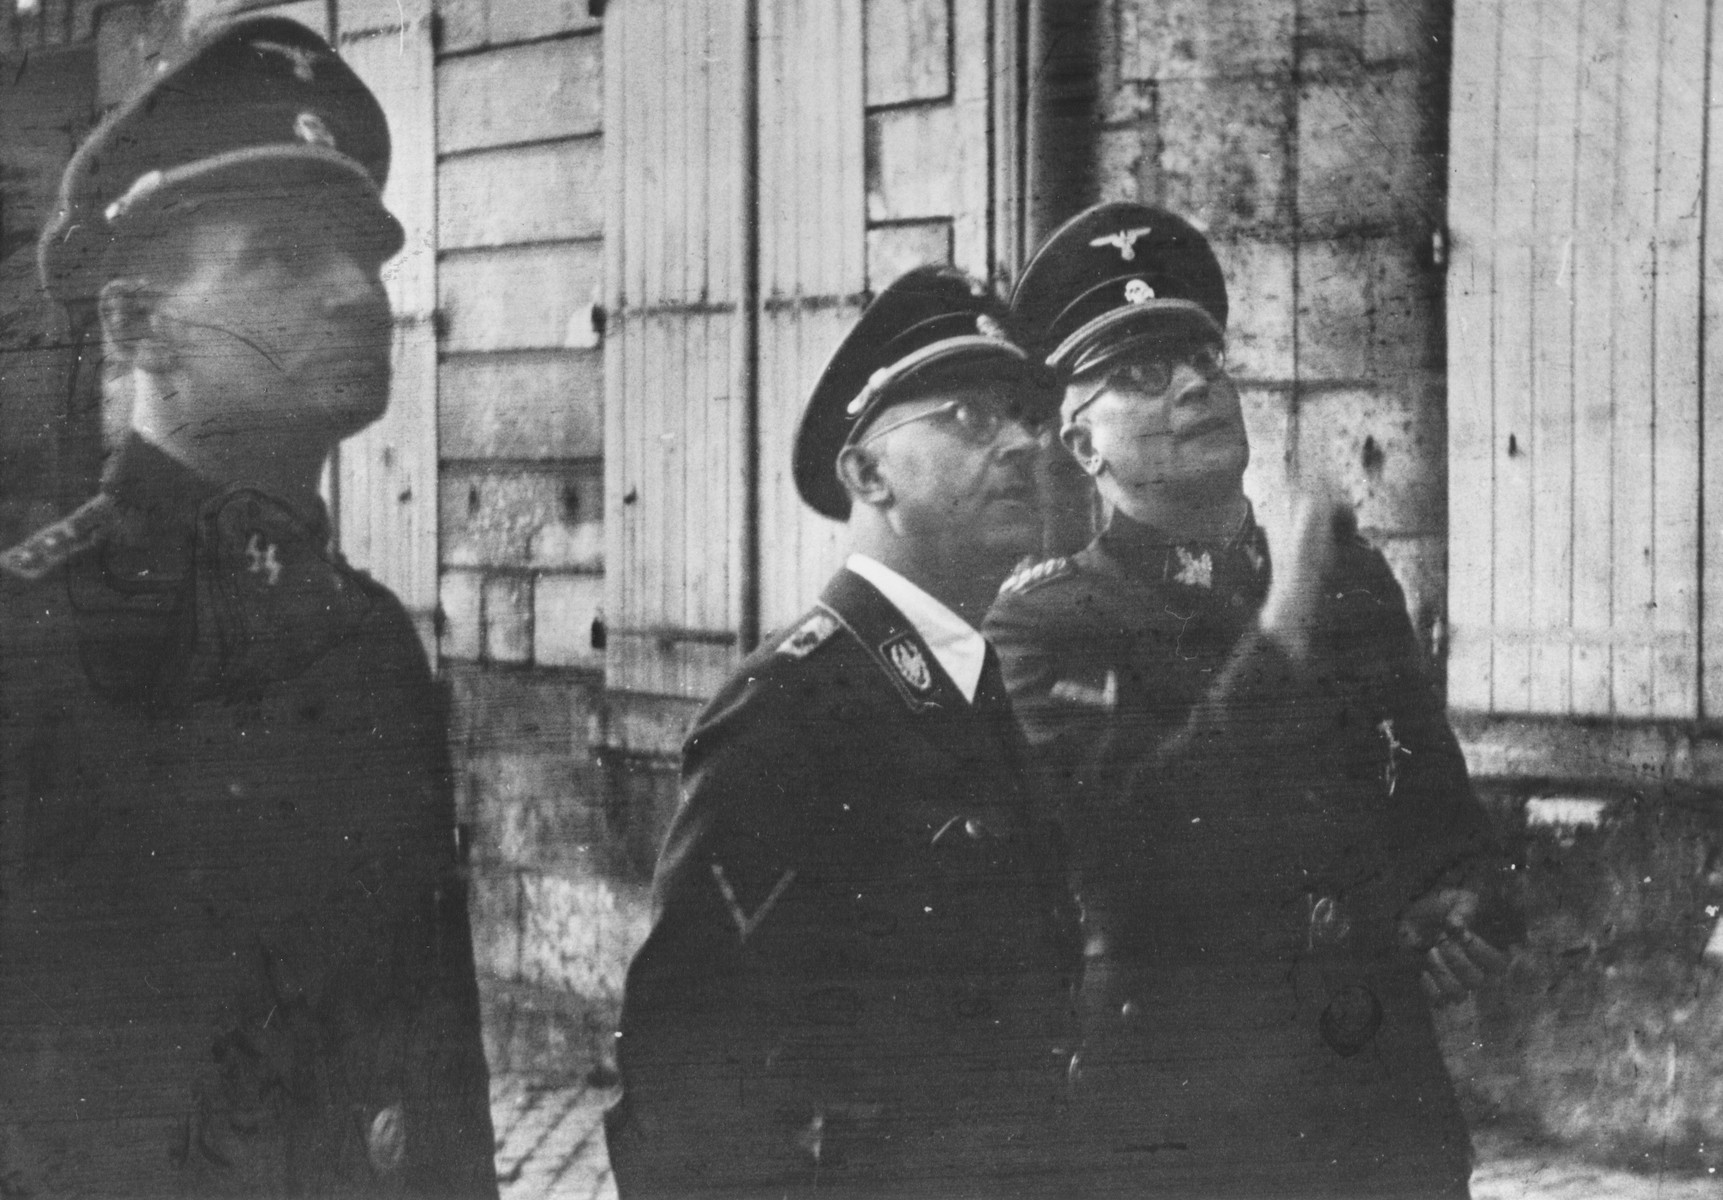 Reichsfuehrer-SS Heinrich Himmler (center) stands outside with Lothar Debes (rights) and another unidentified SS officer.